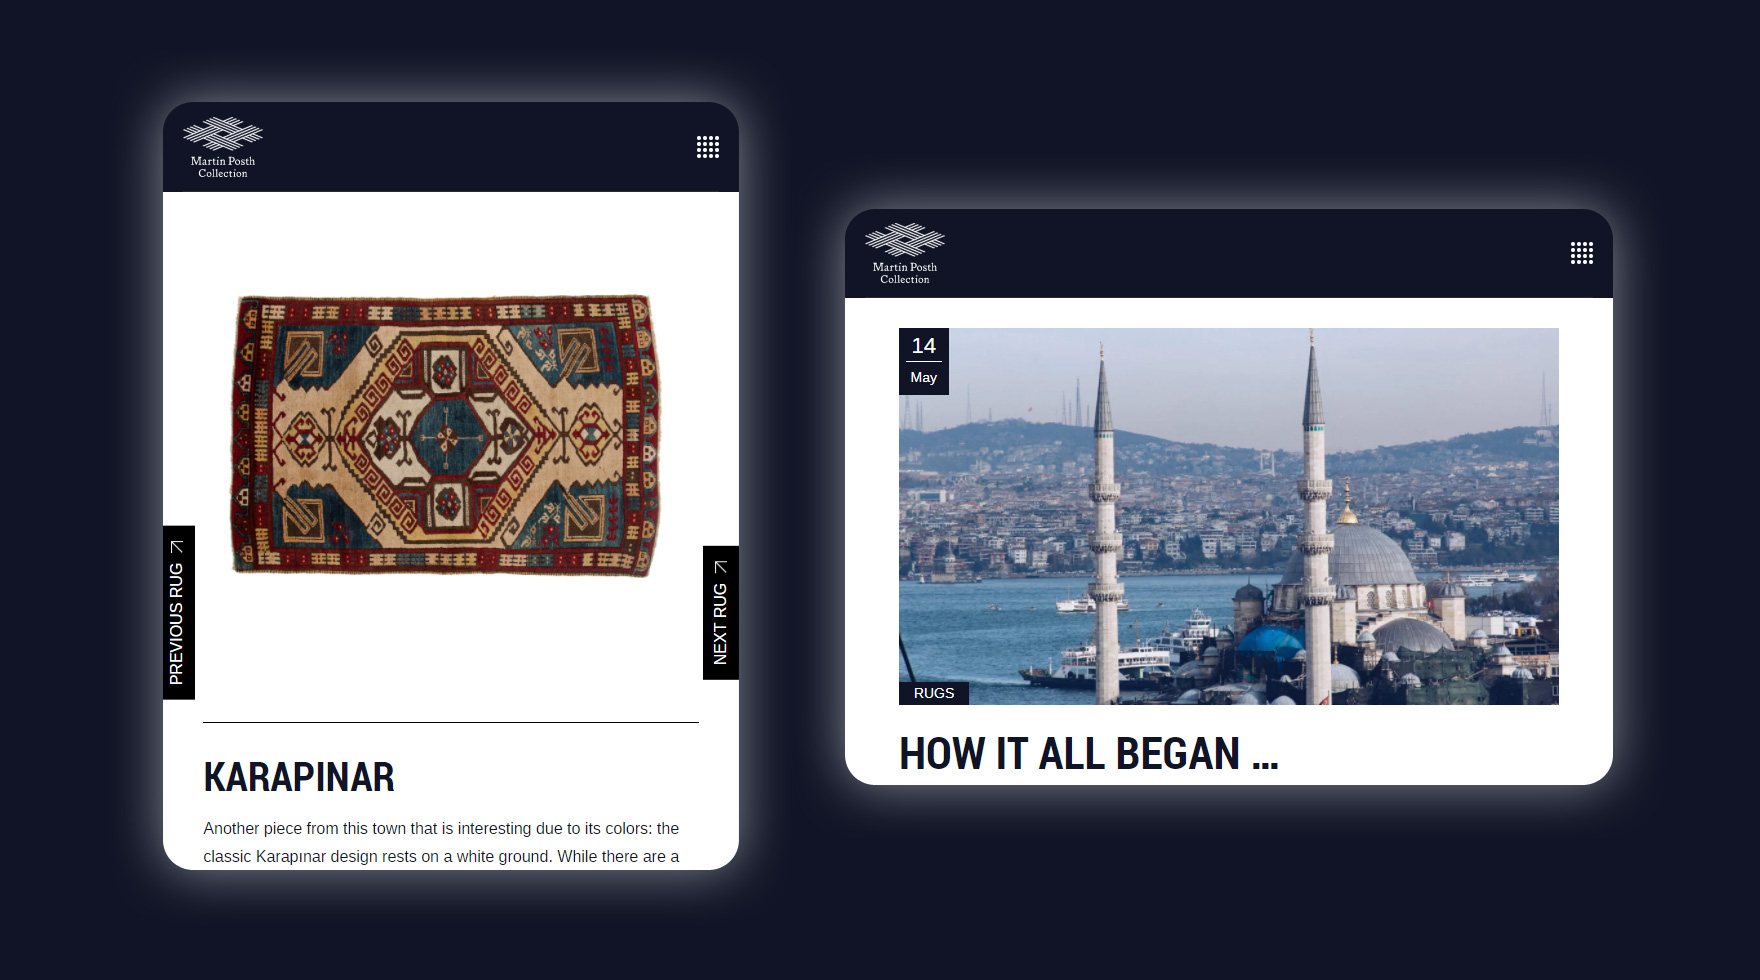 martin-posth-collection-tablet-layout-website-webkreation